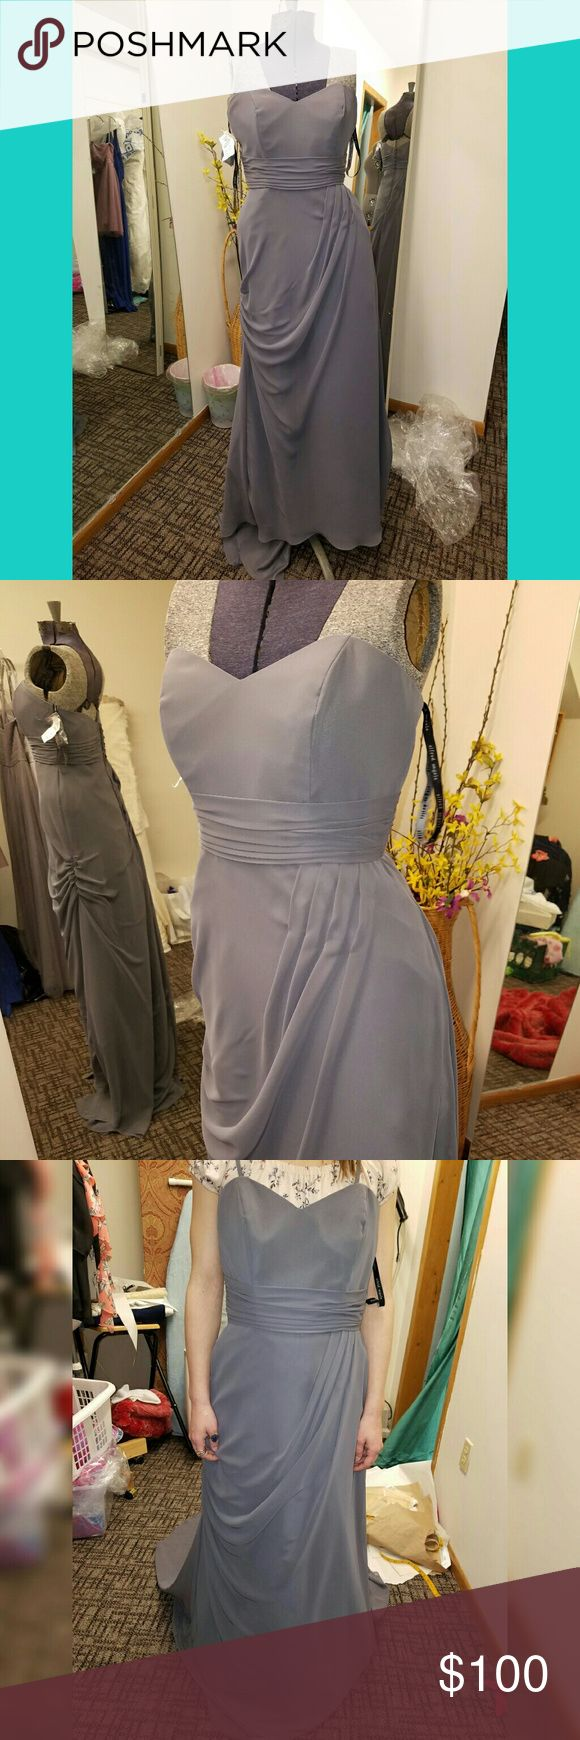 Gorgeous charcoal gray formal dress! Has beautiful gathering stitches in the right places for great accents to a woman's curves! Alfred Angelo Dresses Wedding